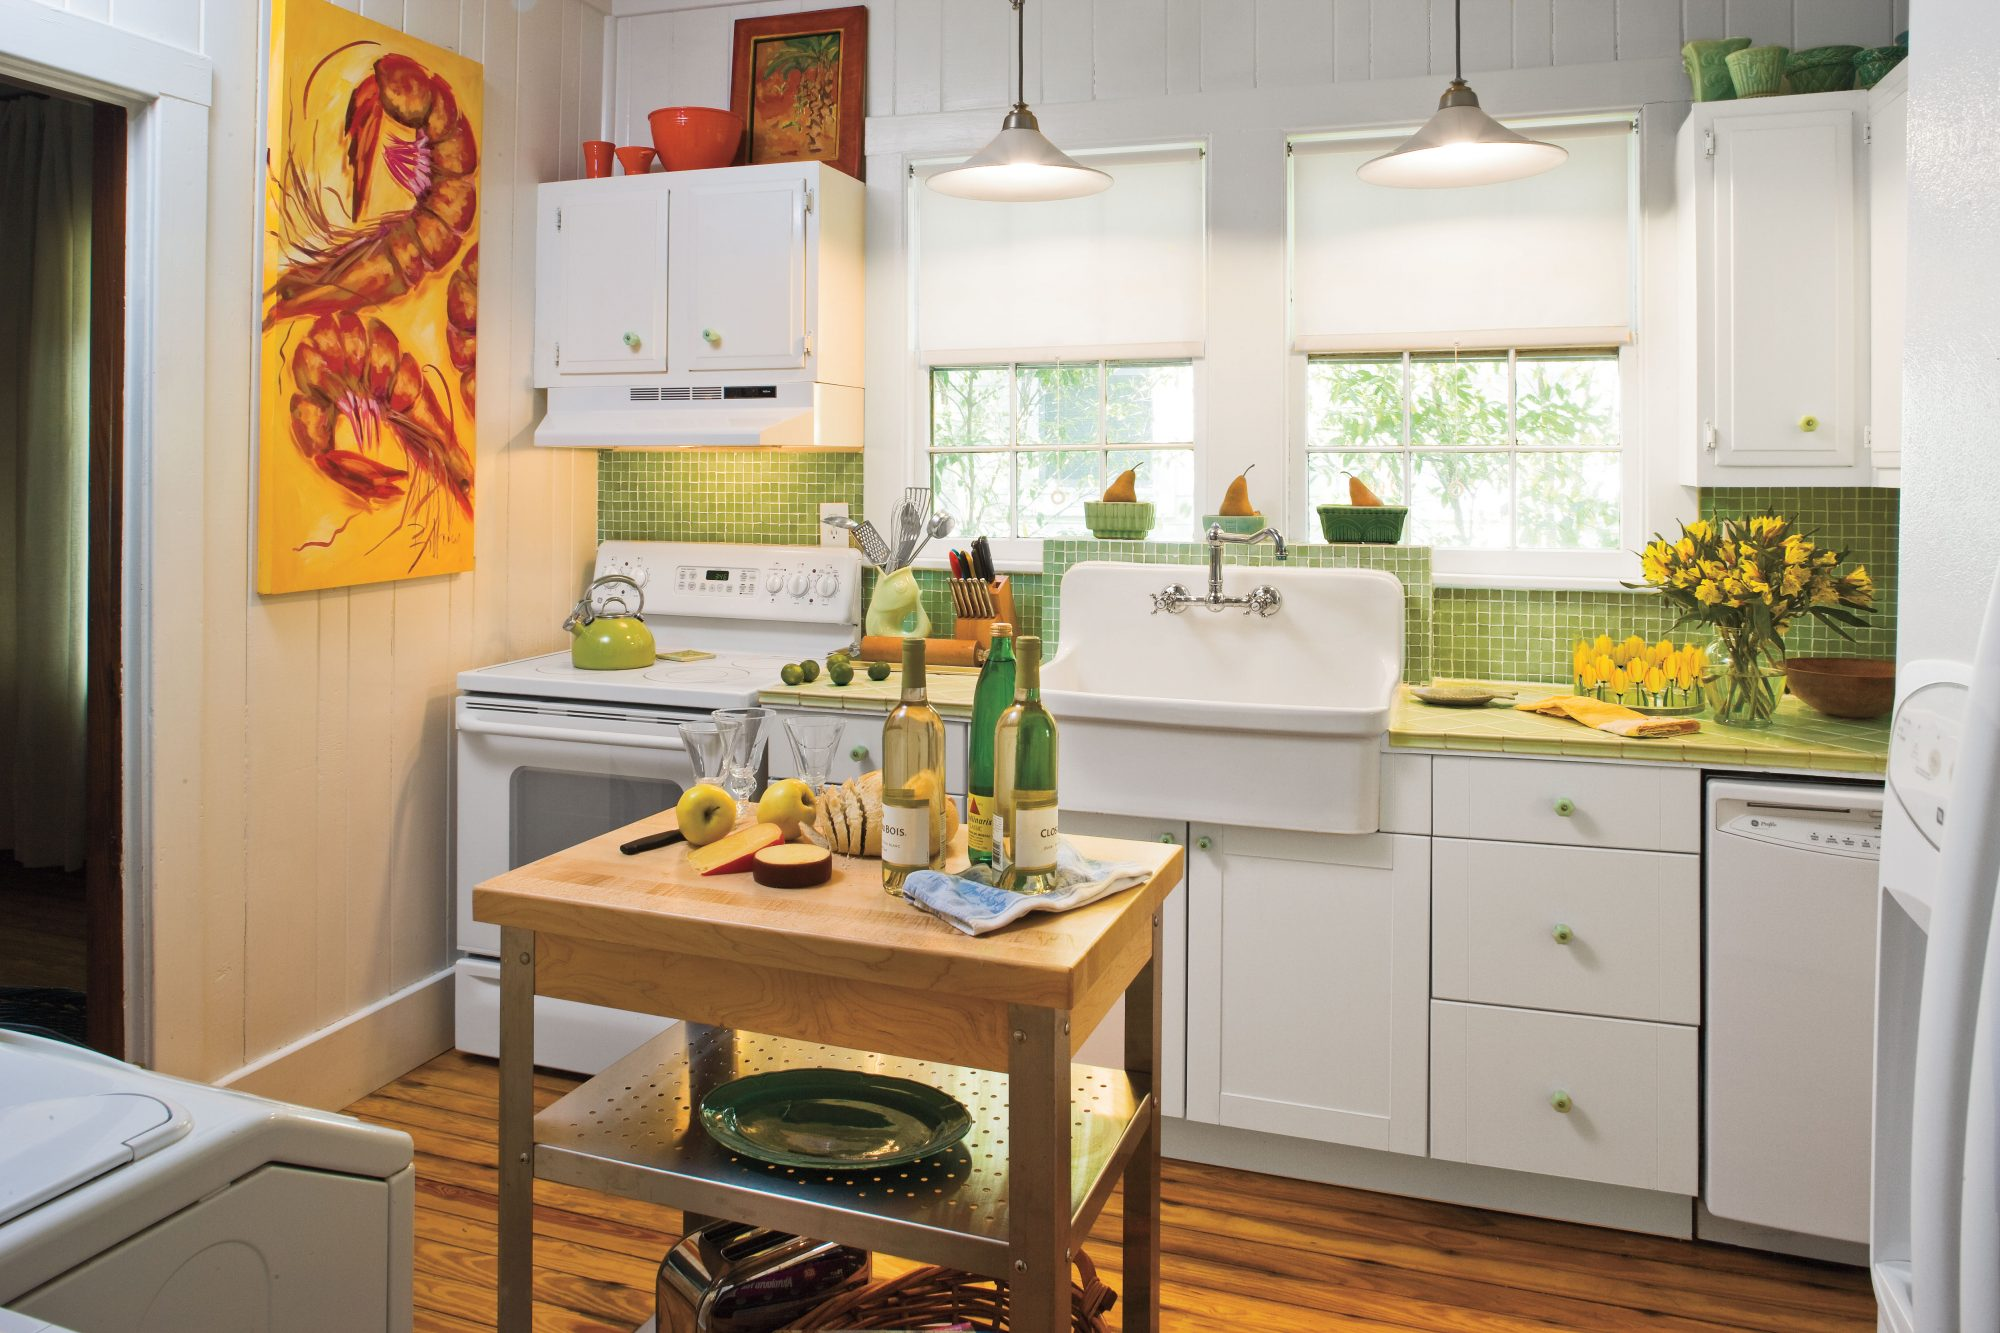 Stylish vintage kitchen ideas southern living for 1930s style kitchen design